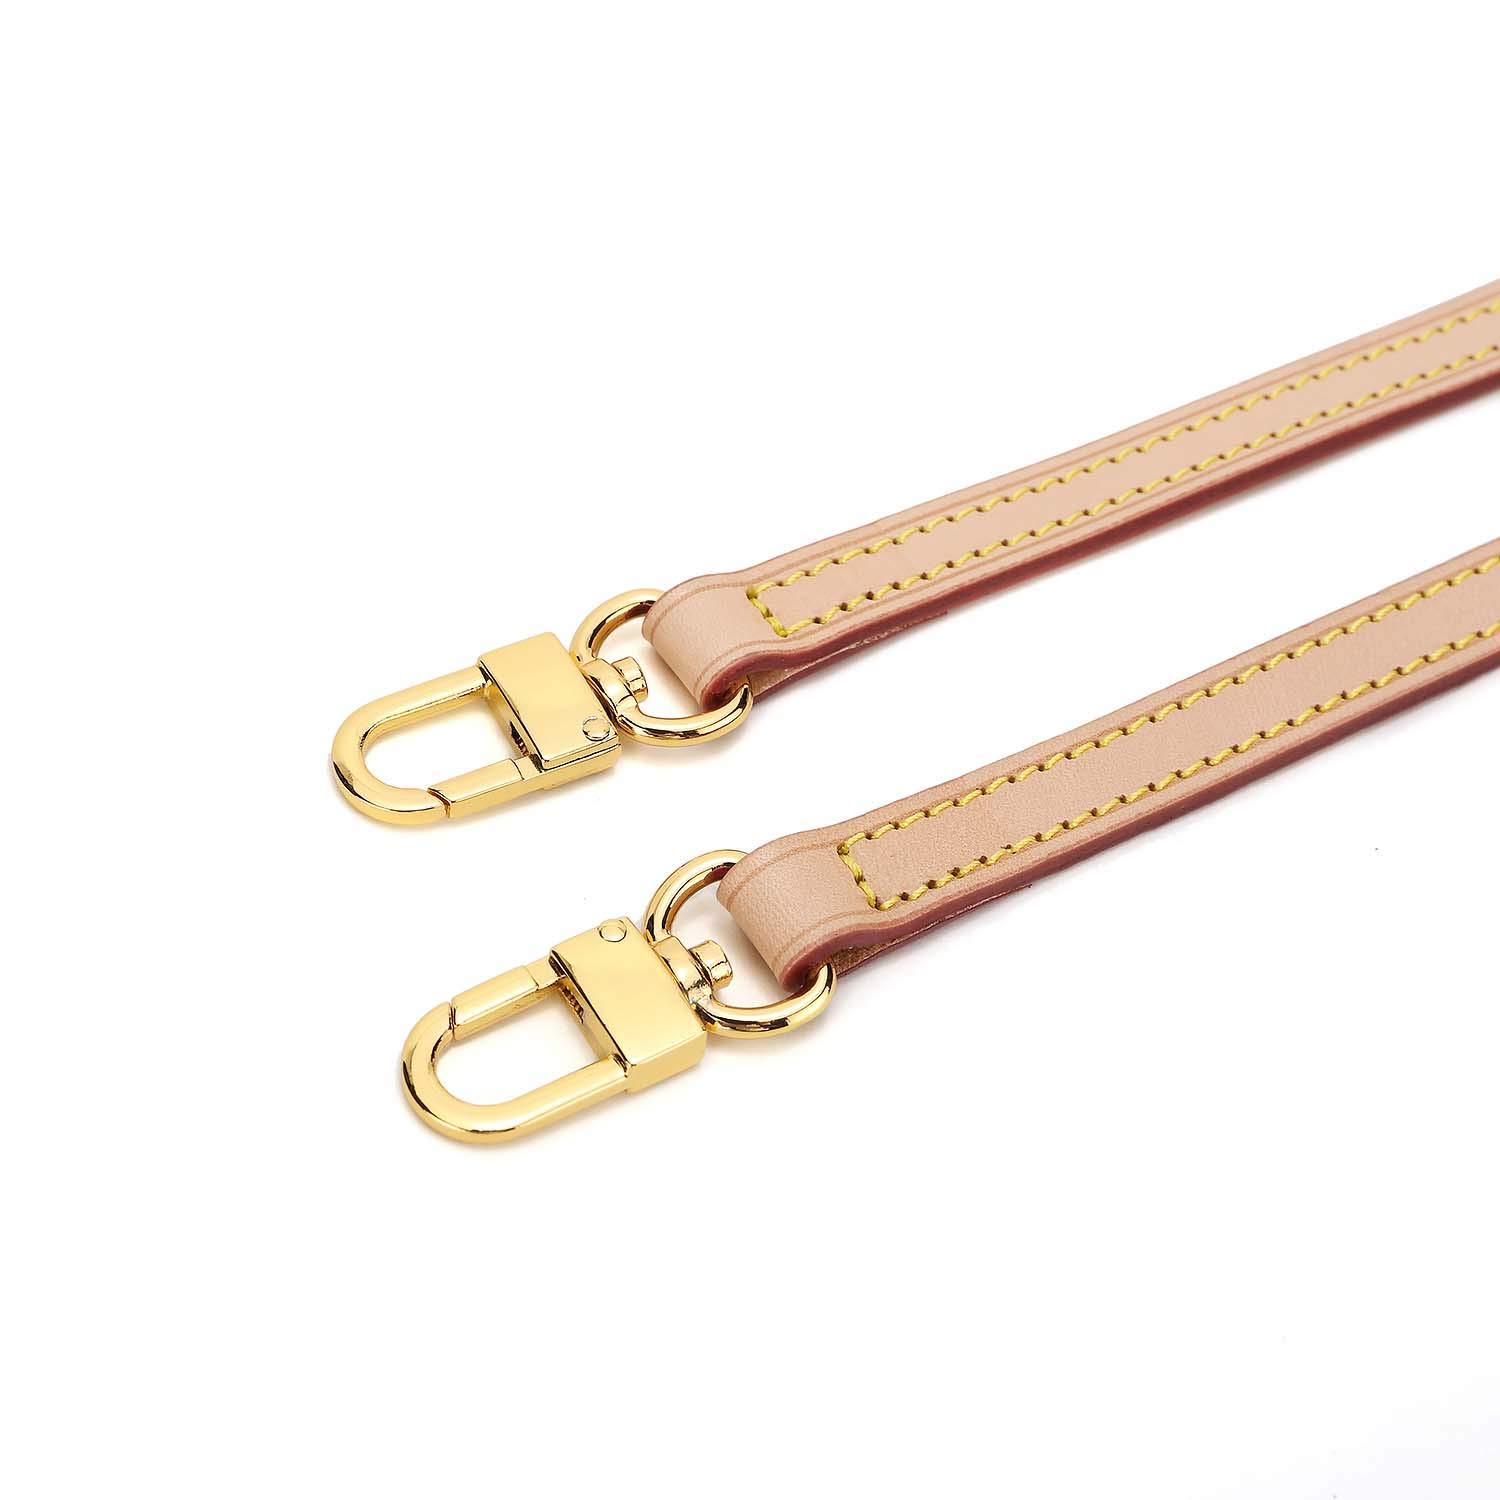 Adjustable Replacement Leather Strap for Alma SP Vegetable Tanned Wide Cross Body Strap for Purse DIY Strap for Messenger Bag